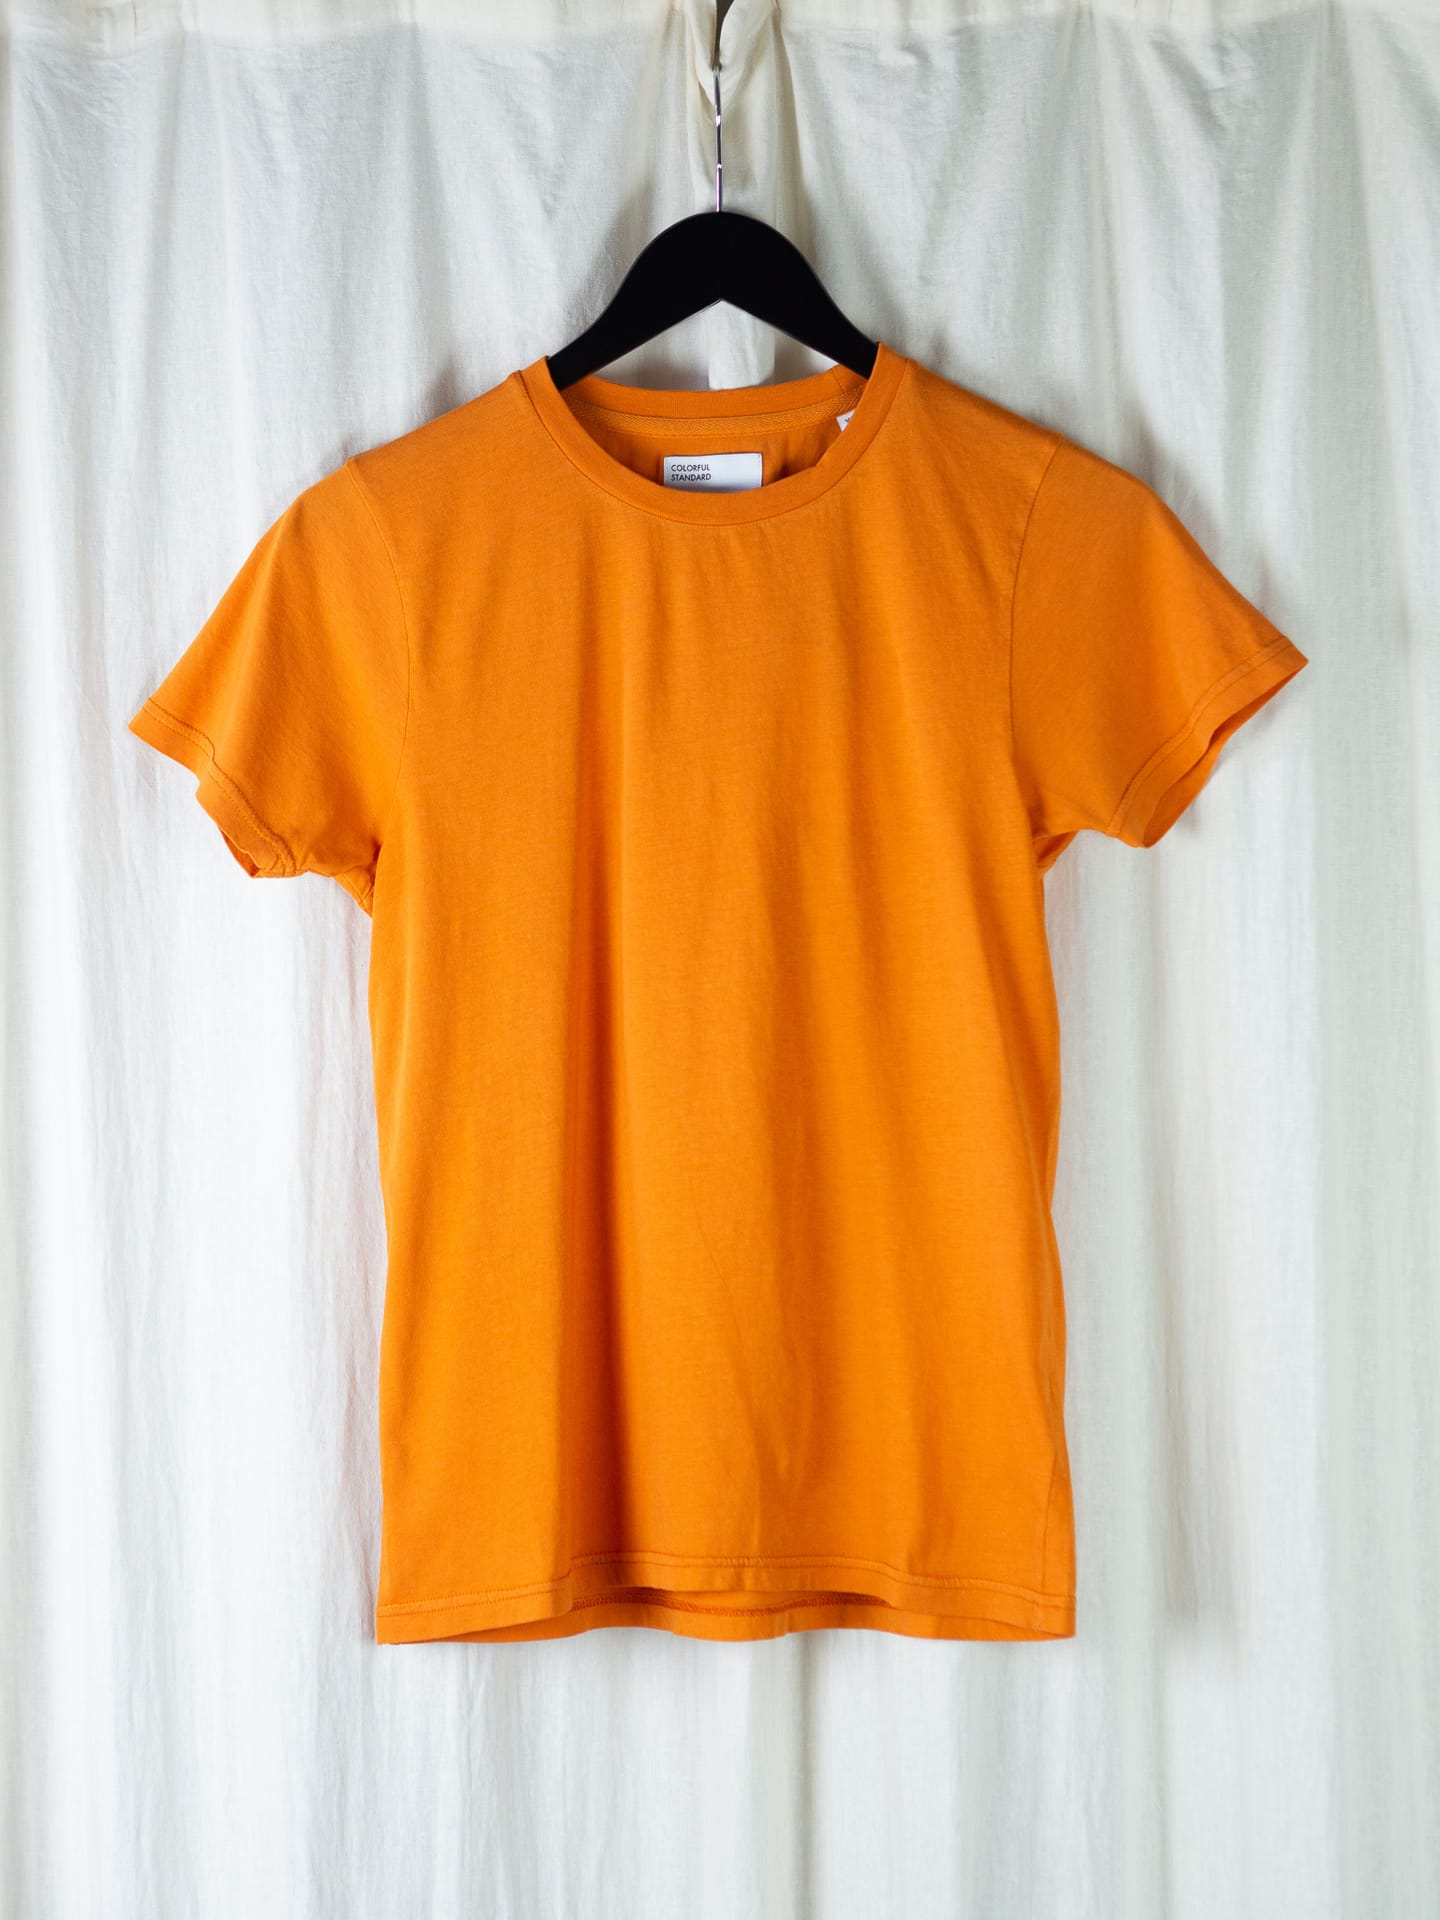 Women light organic tee - burned orange